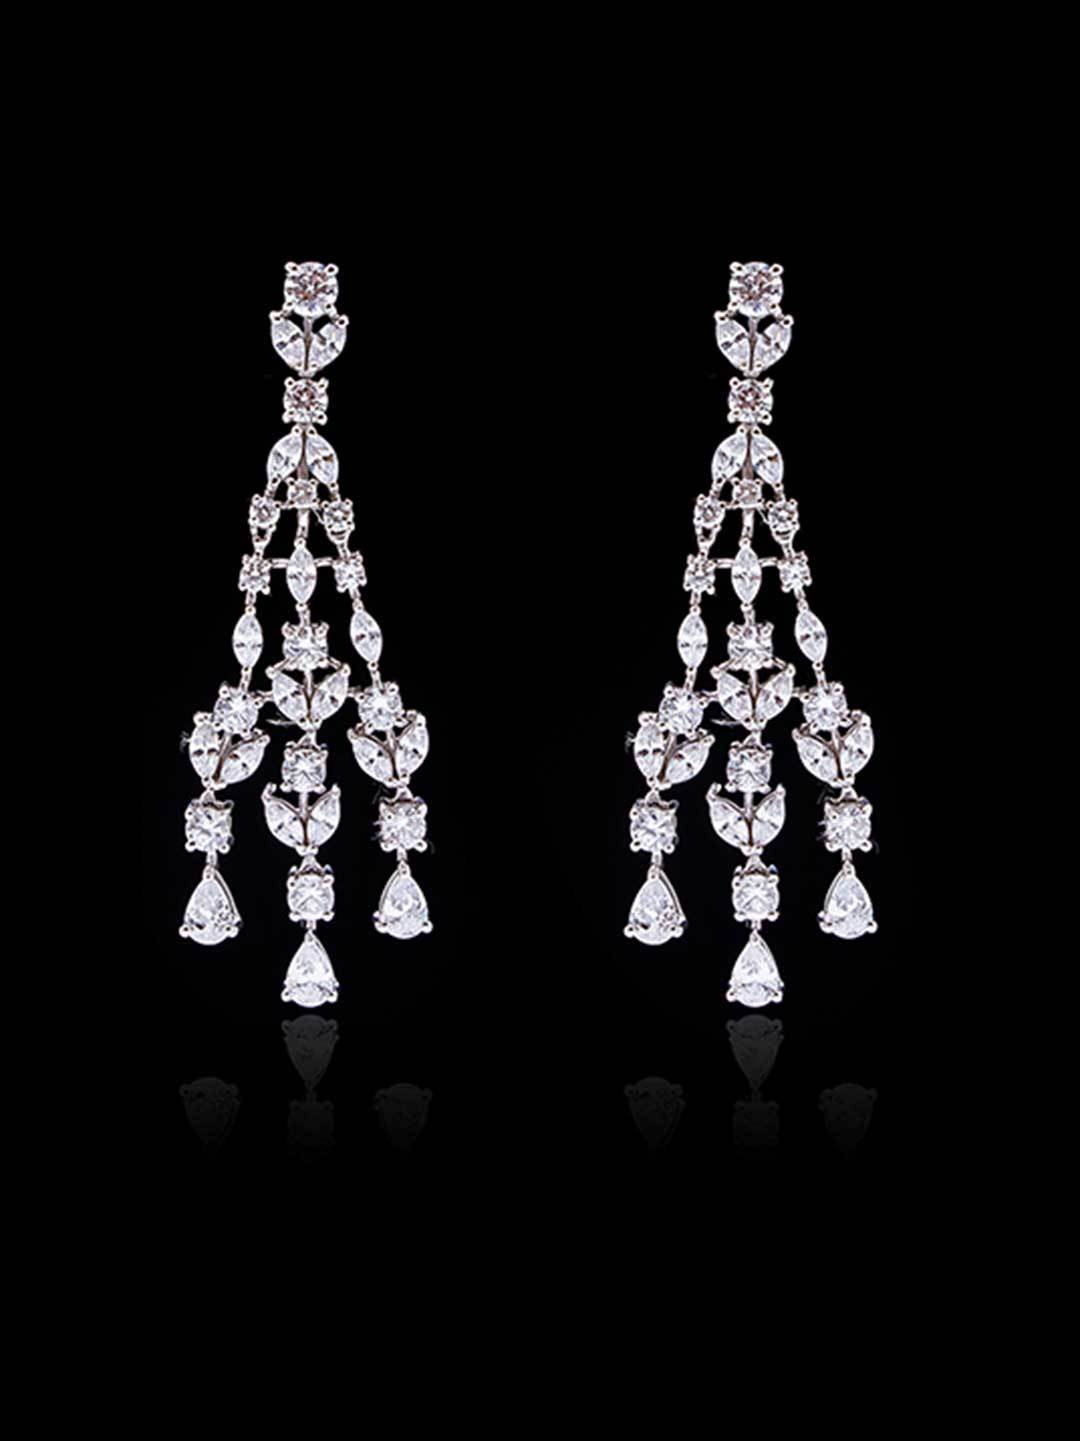 Earrings - SIA Jewellery